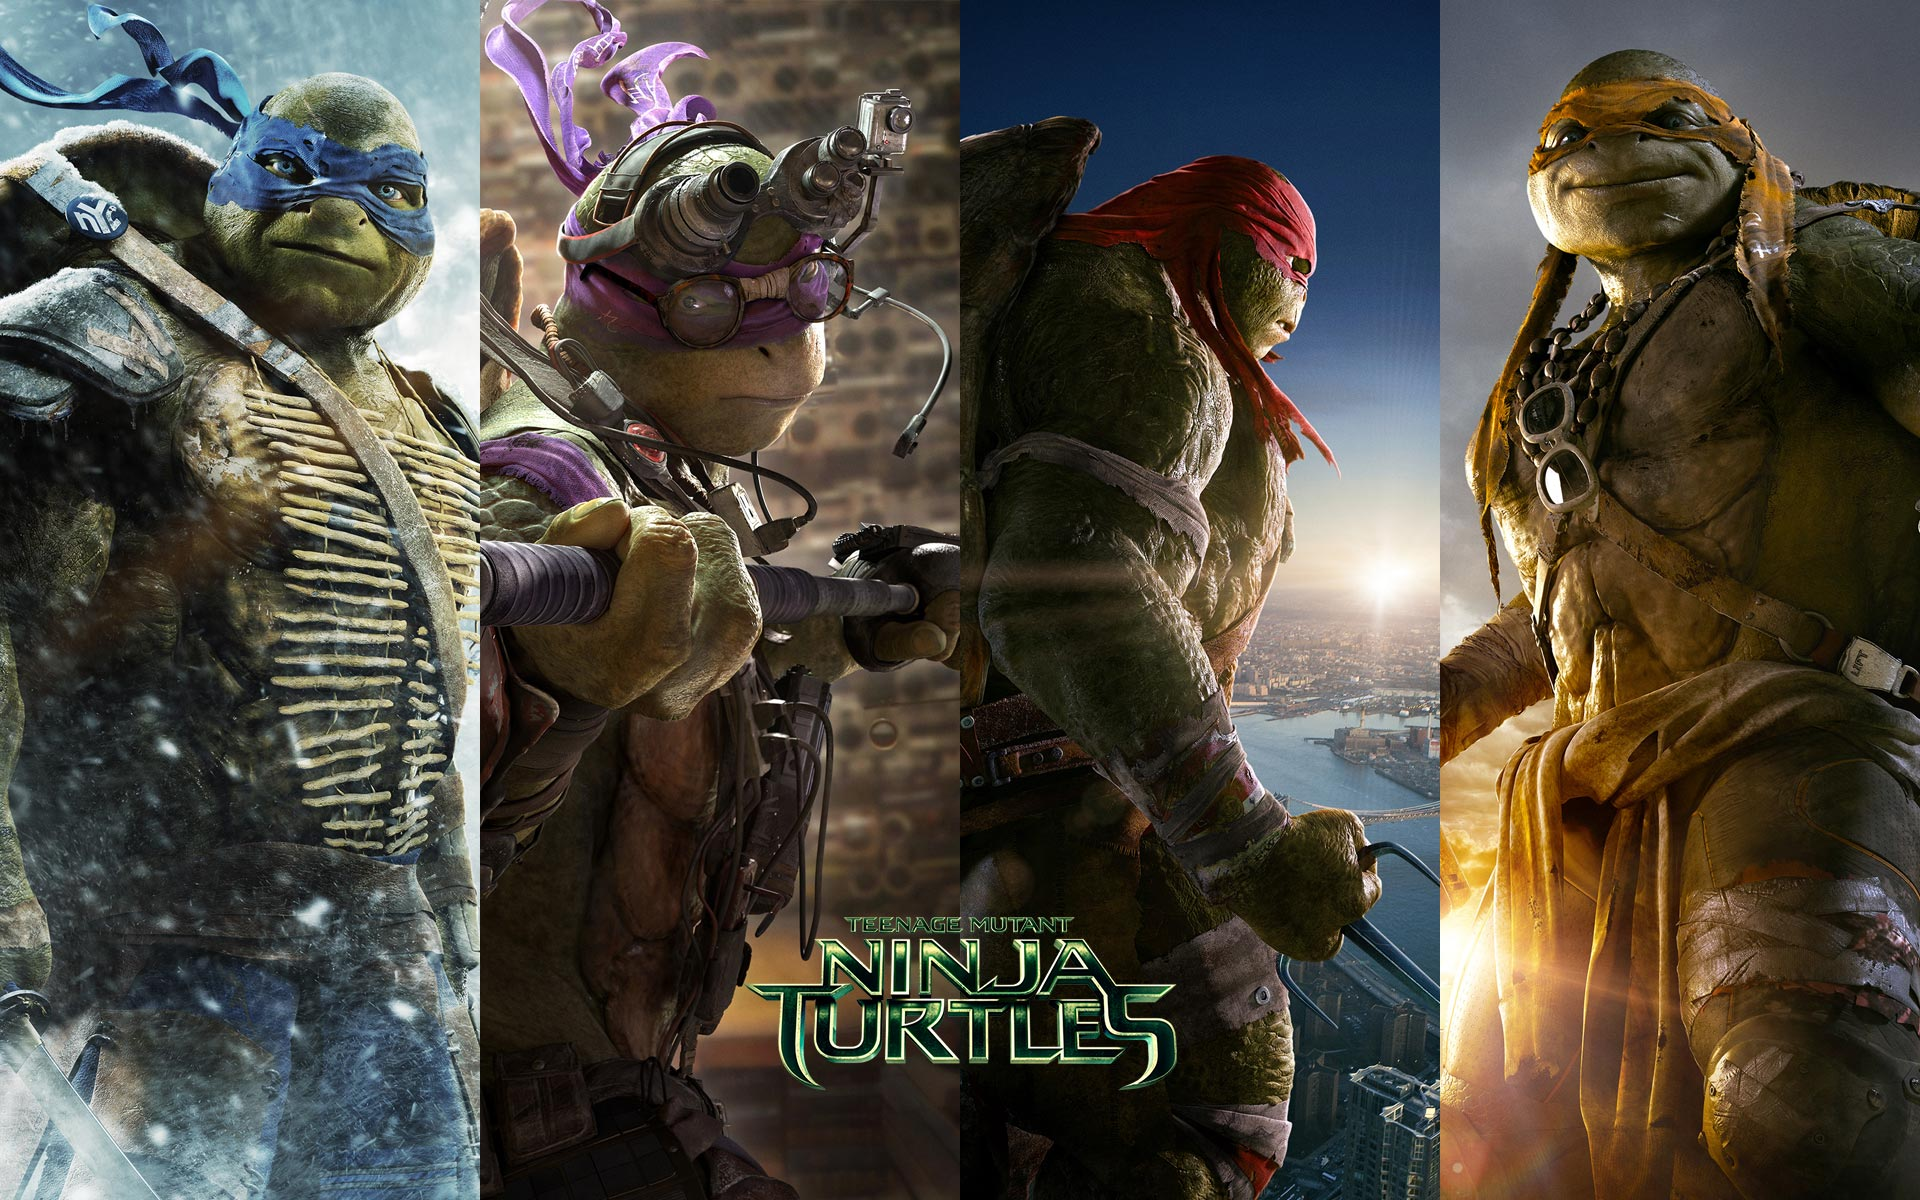 Teenage Mutant Ninja Turtles TMNT 2014 HD Desktop IPhone amp IPad